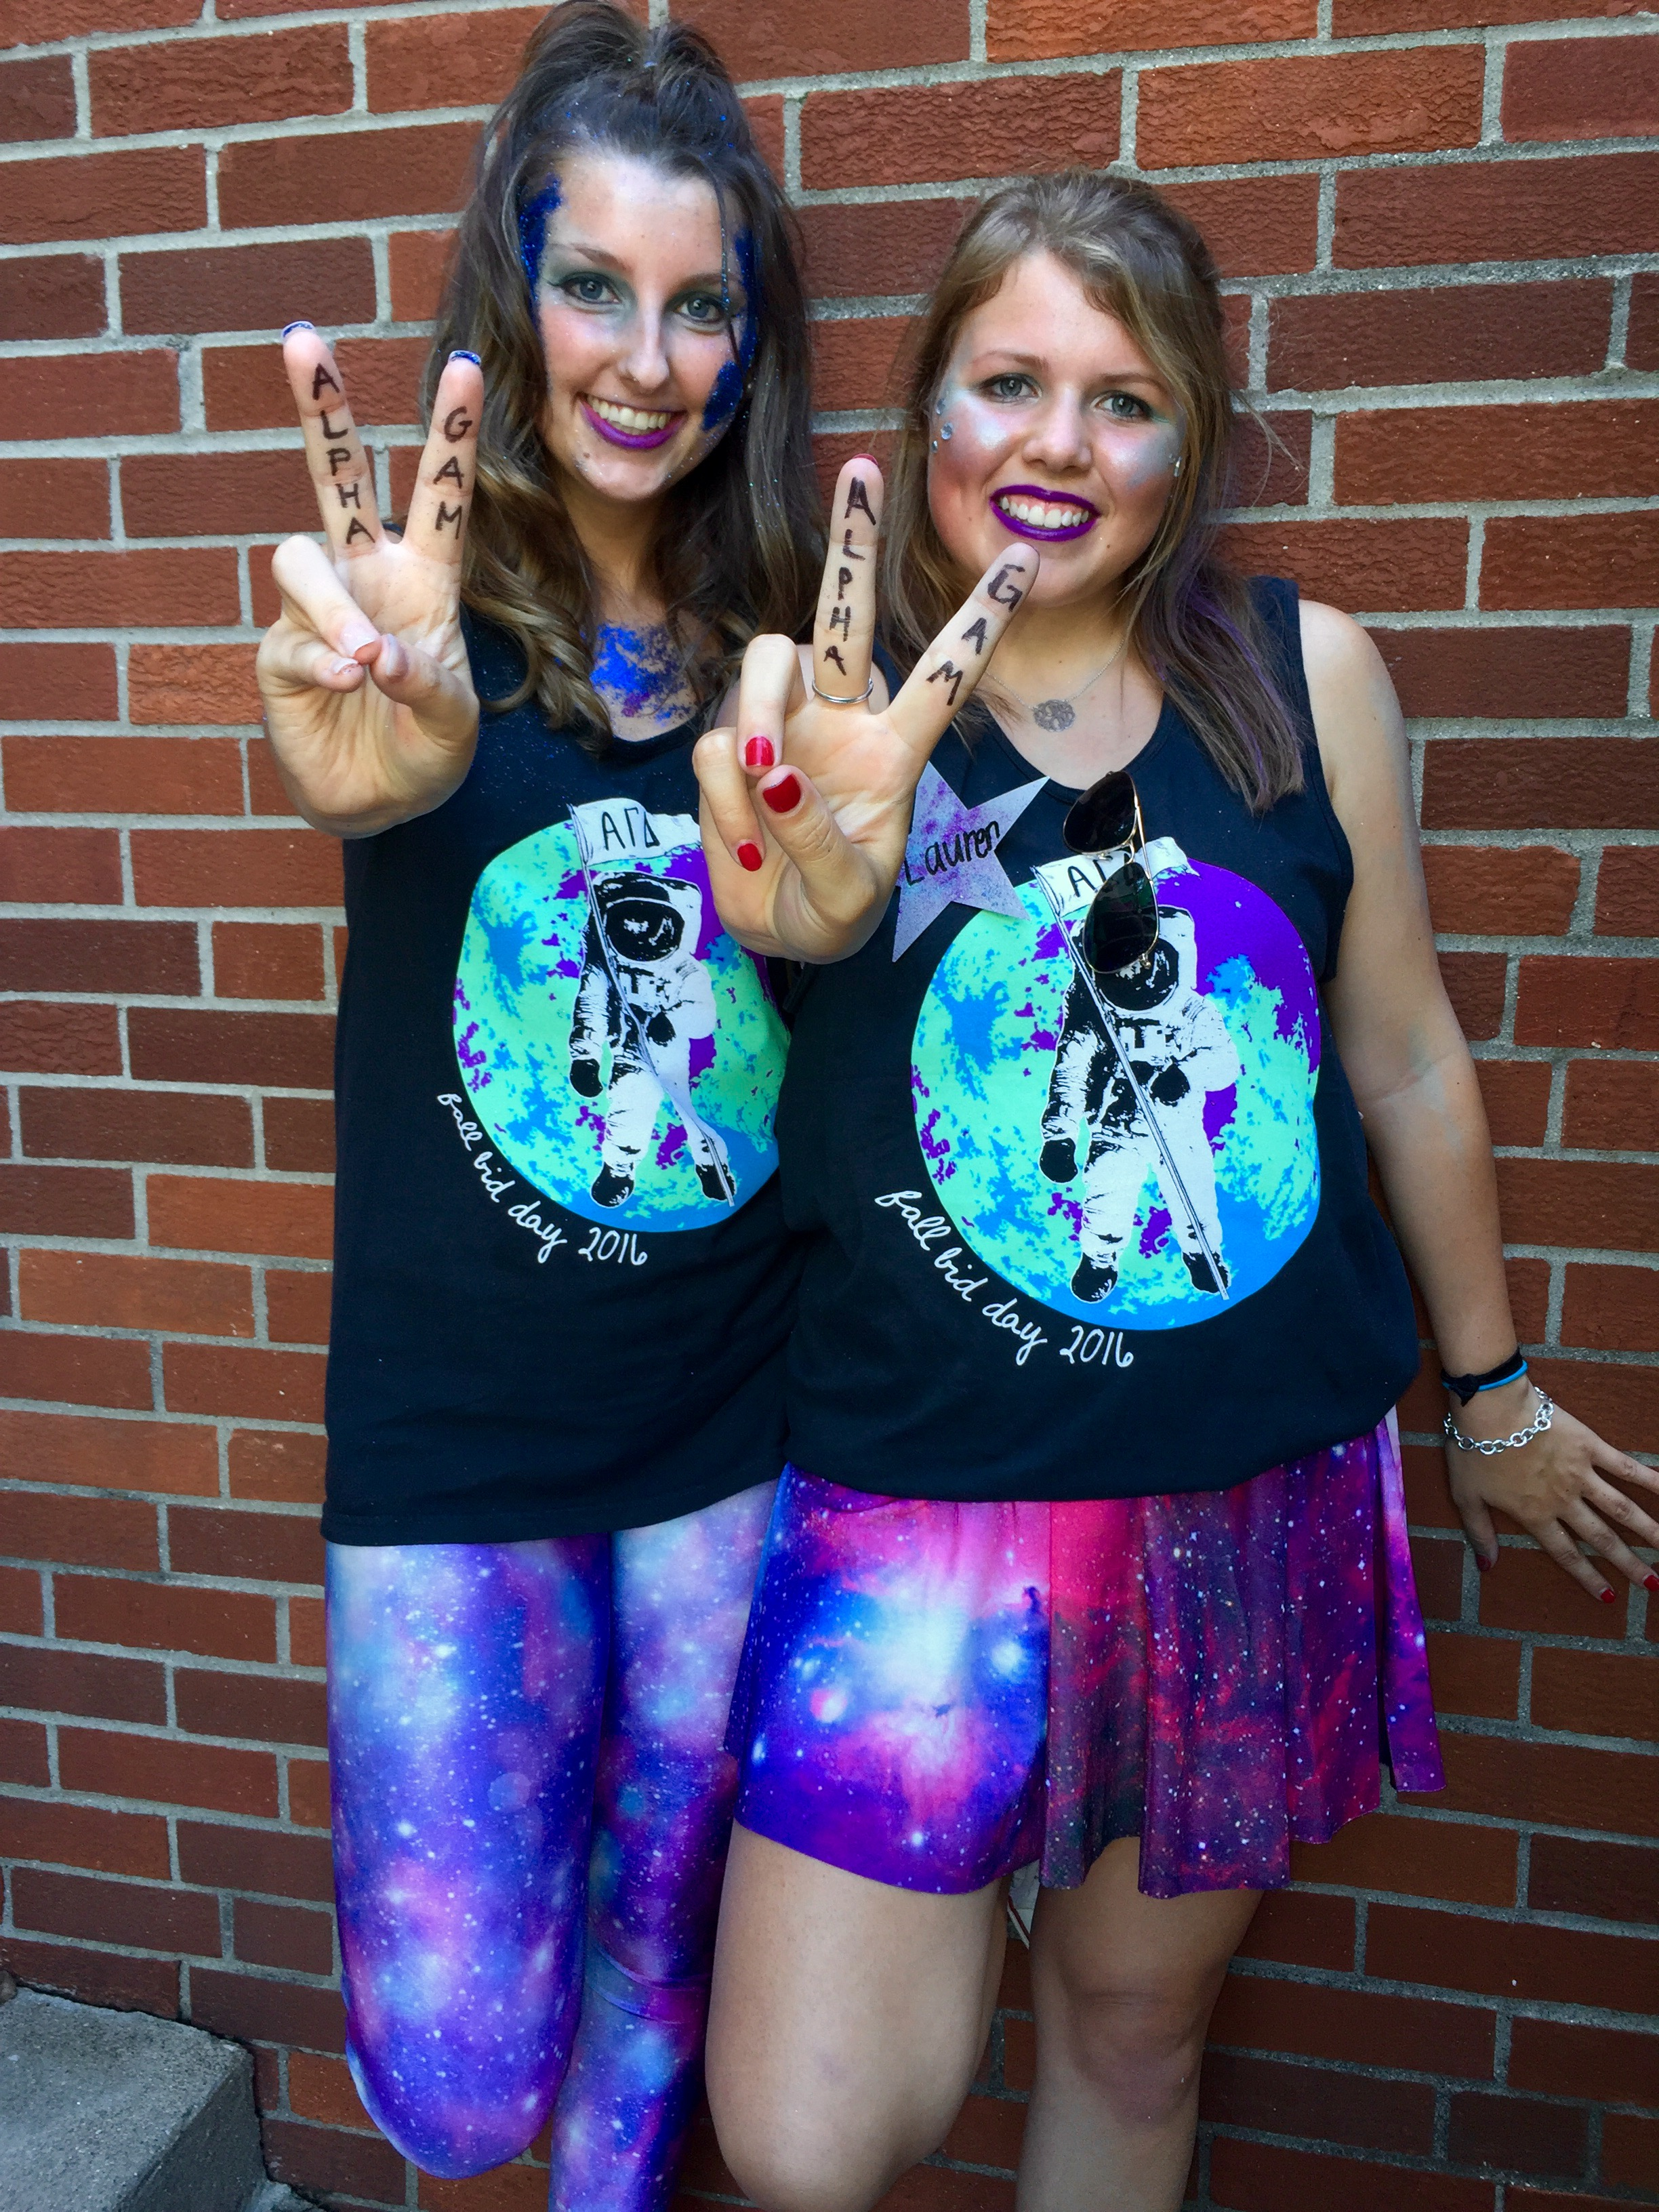 Bid Day 2016: Alpha Gam Is Out of This World